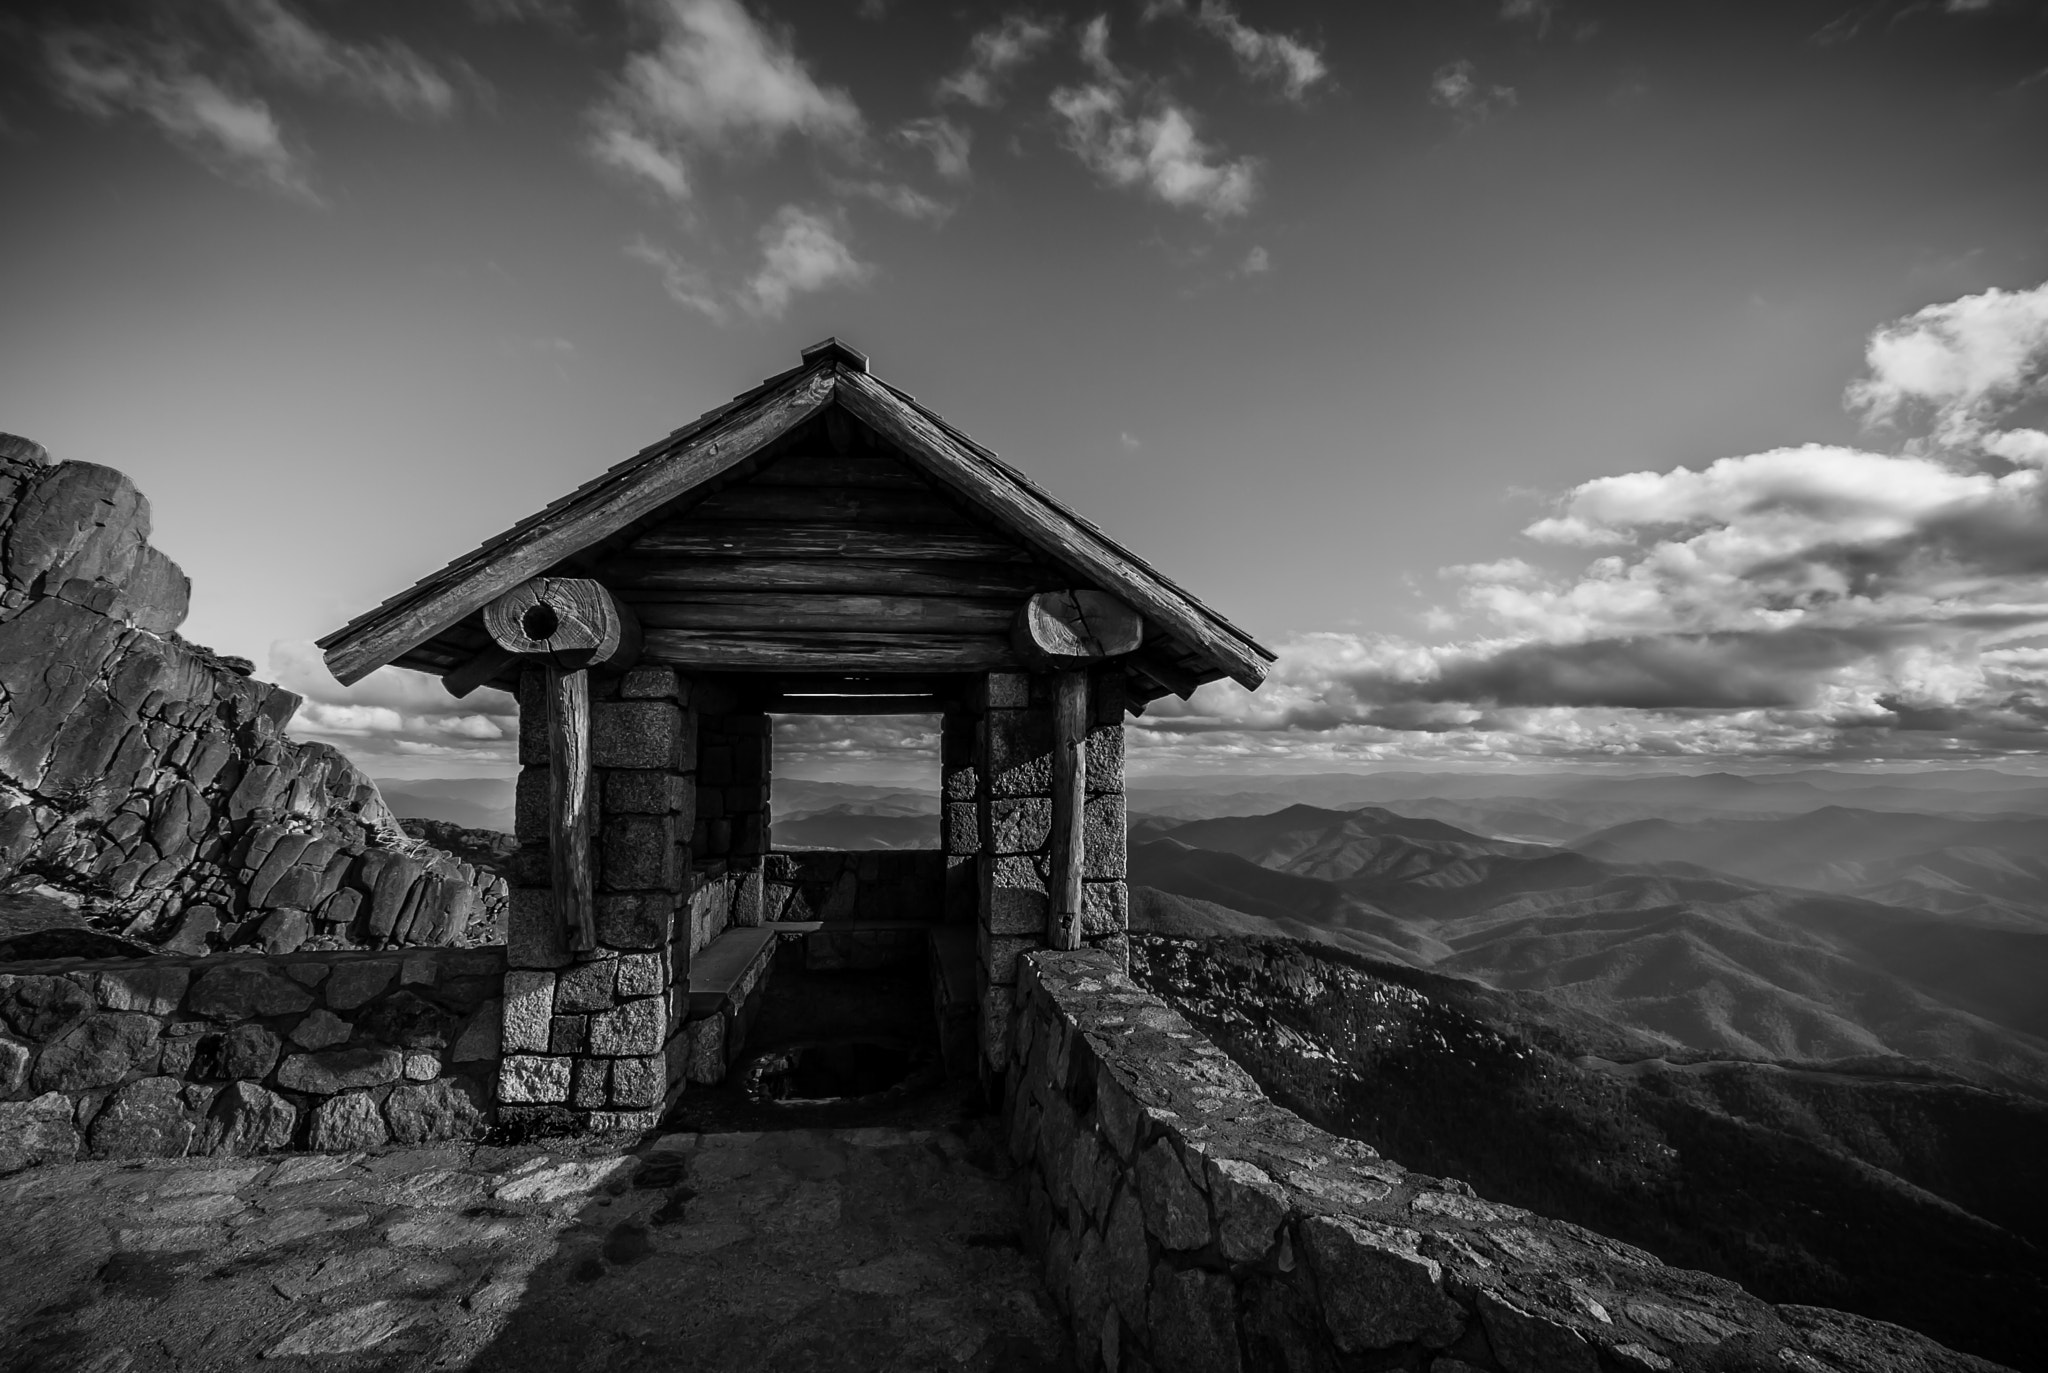 Photograph Room With A View by Kym Fielke on 500px